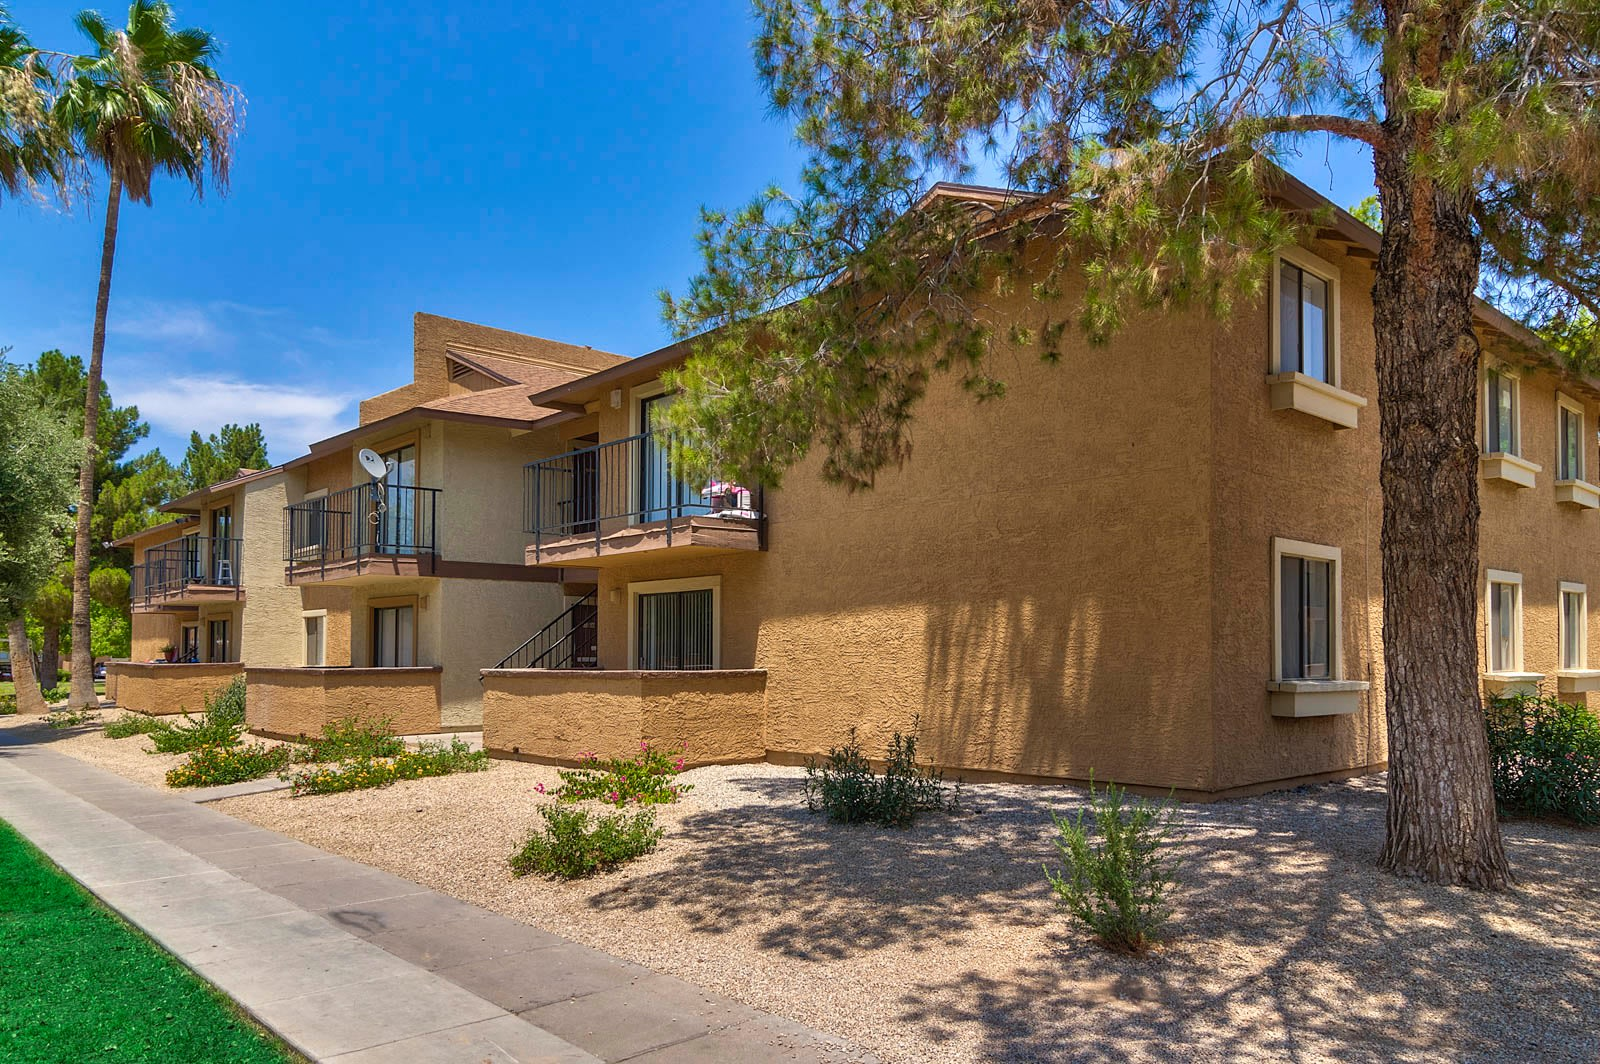 20 Best Apartments Under $800 In Avondale, AZ (with pics)!